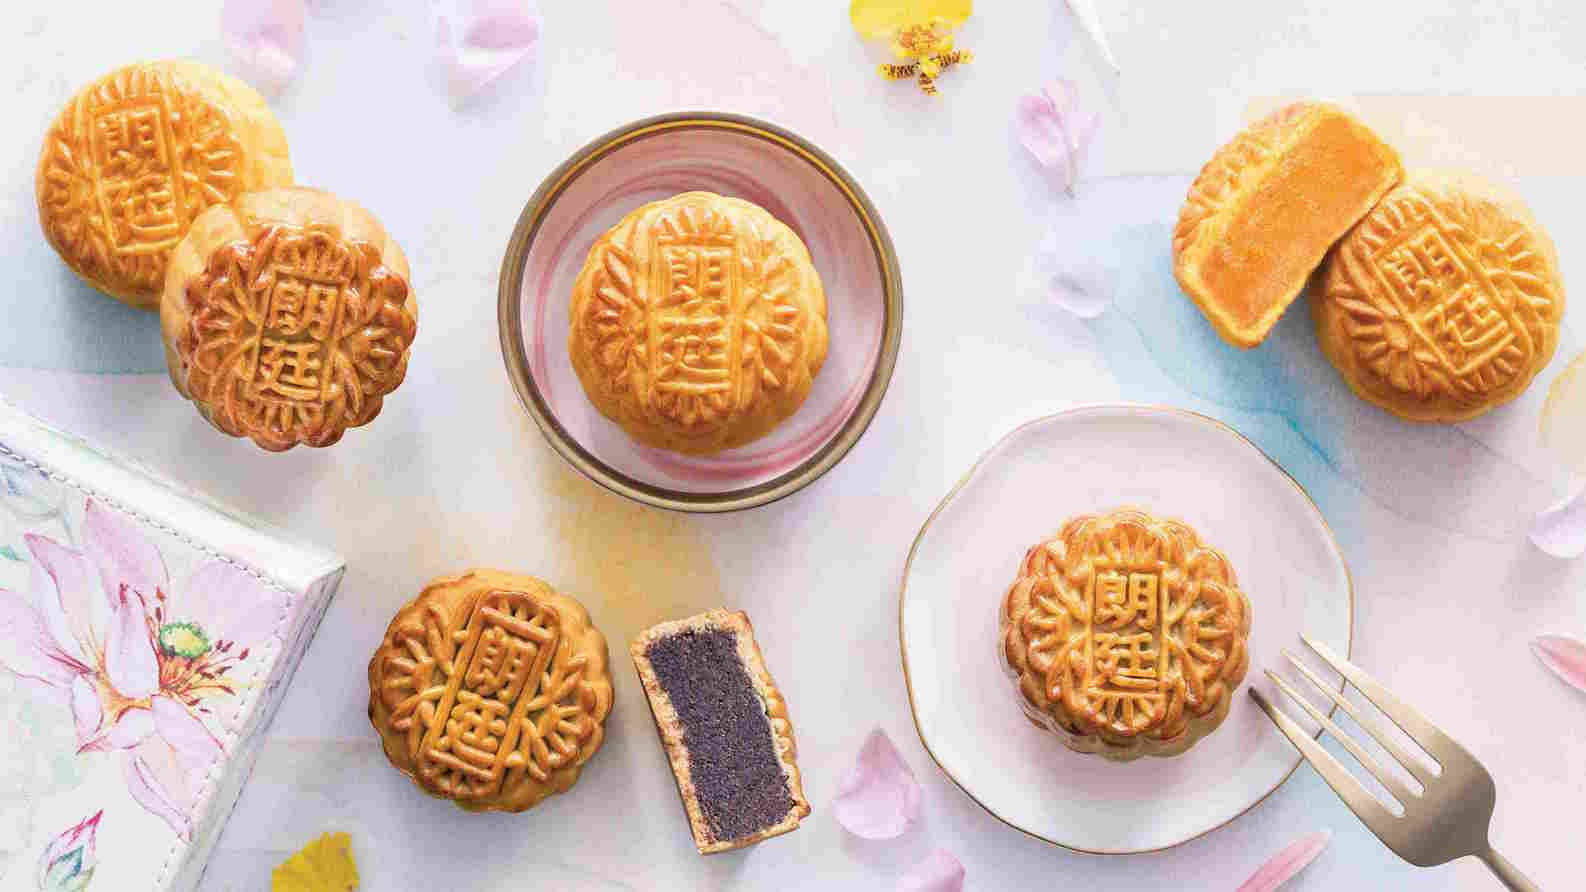 12 decadent mooncakes to gift for Mid-Autumn Festival 2019